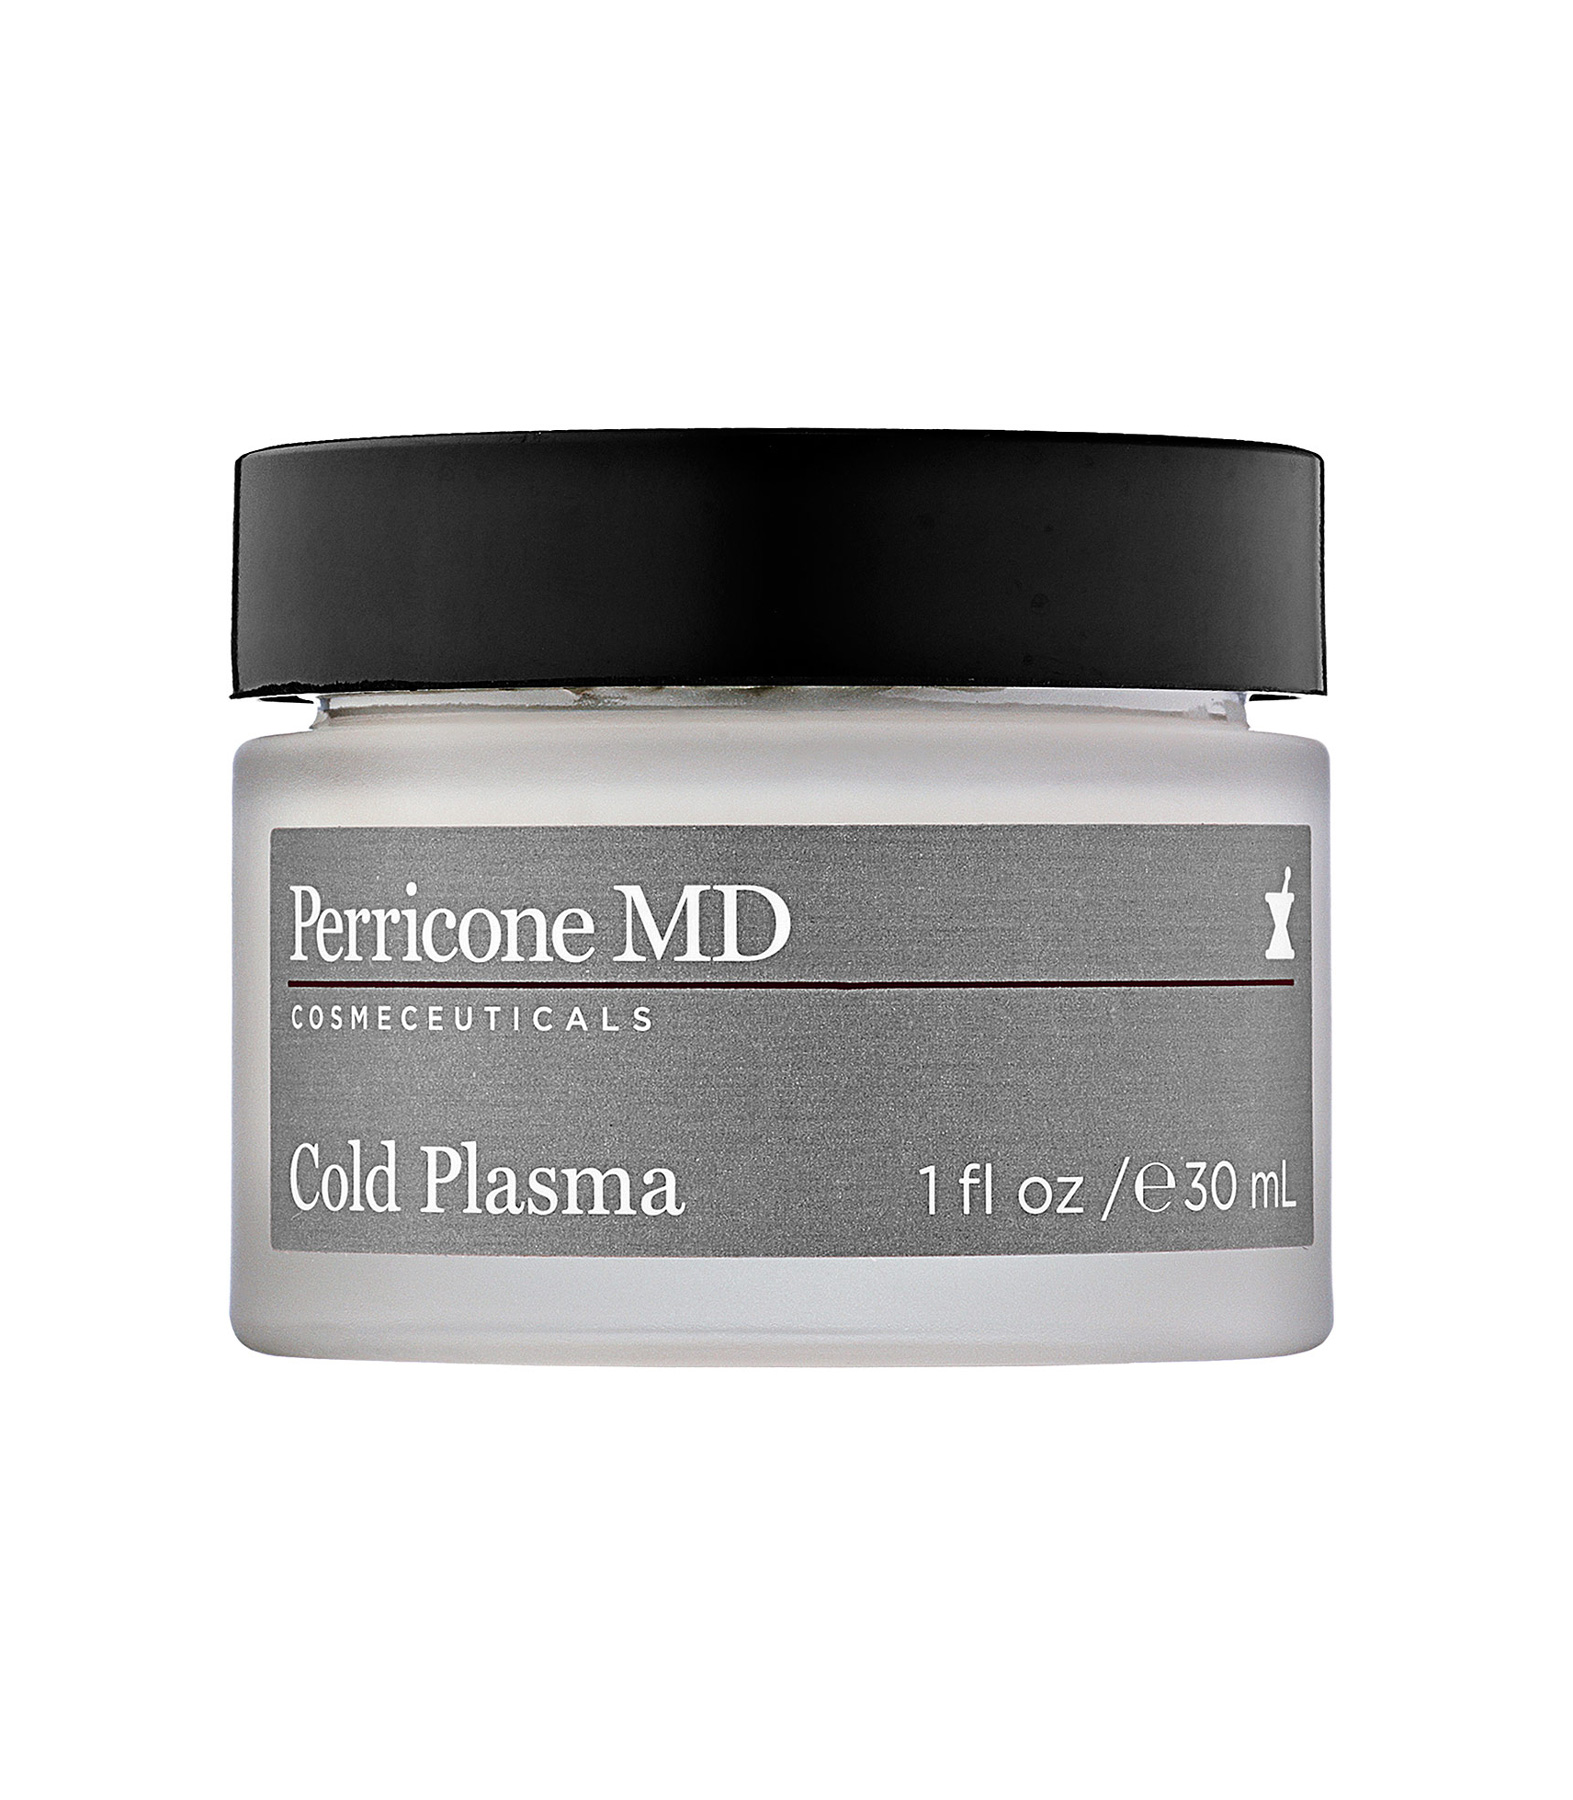 Perricone MD Cold Plasma Anti-Aging Face Treatment